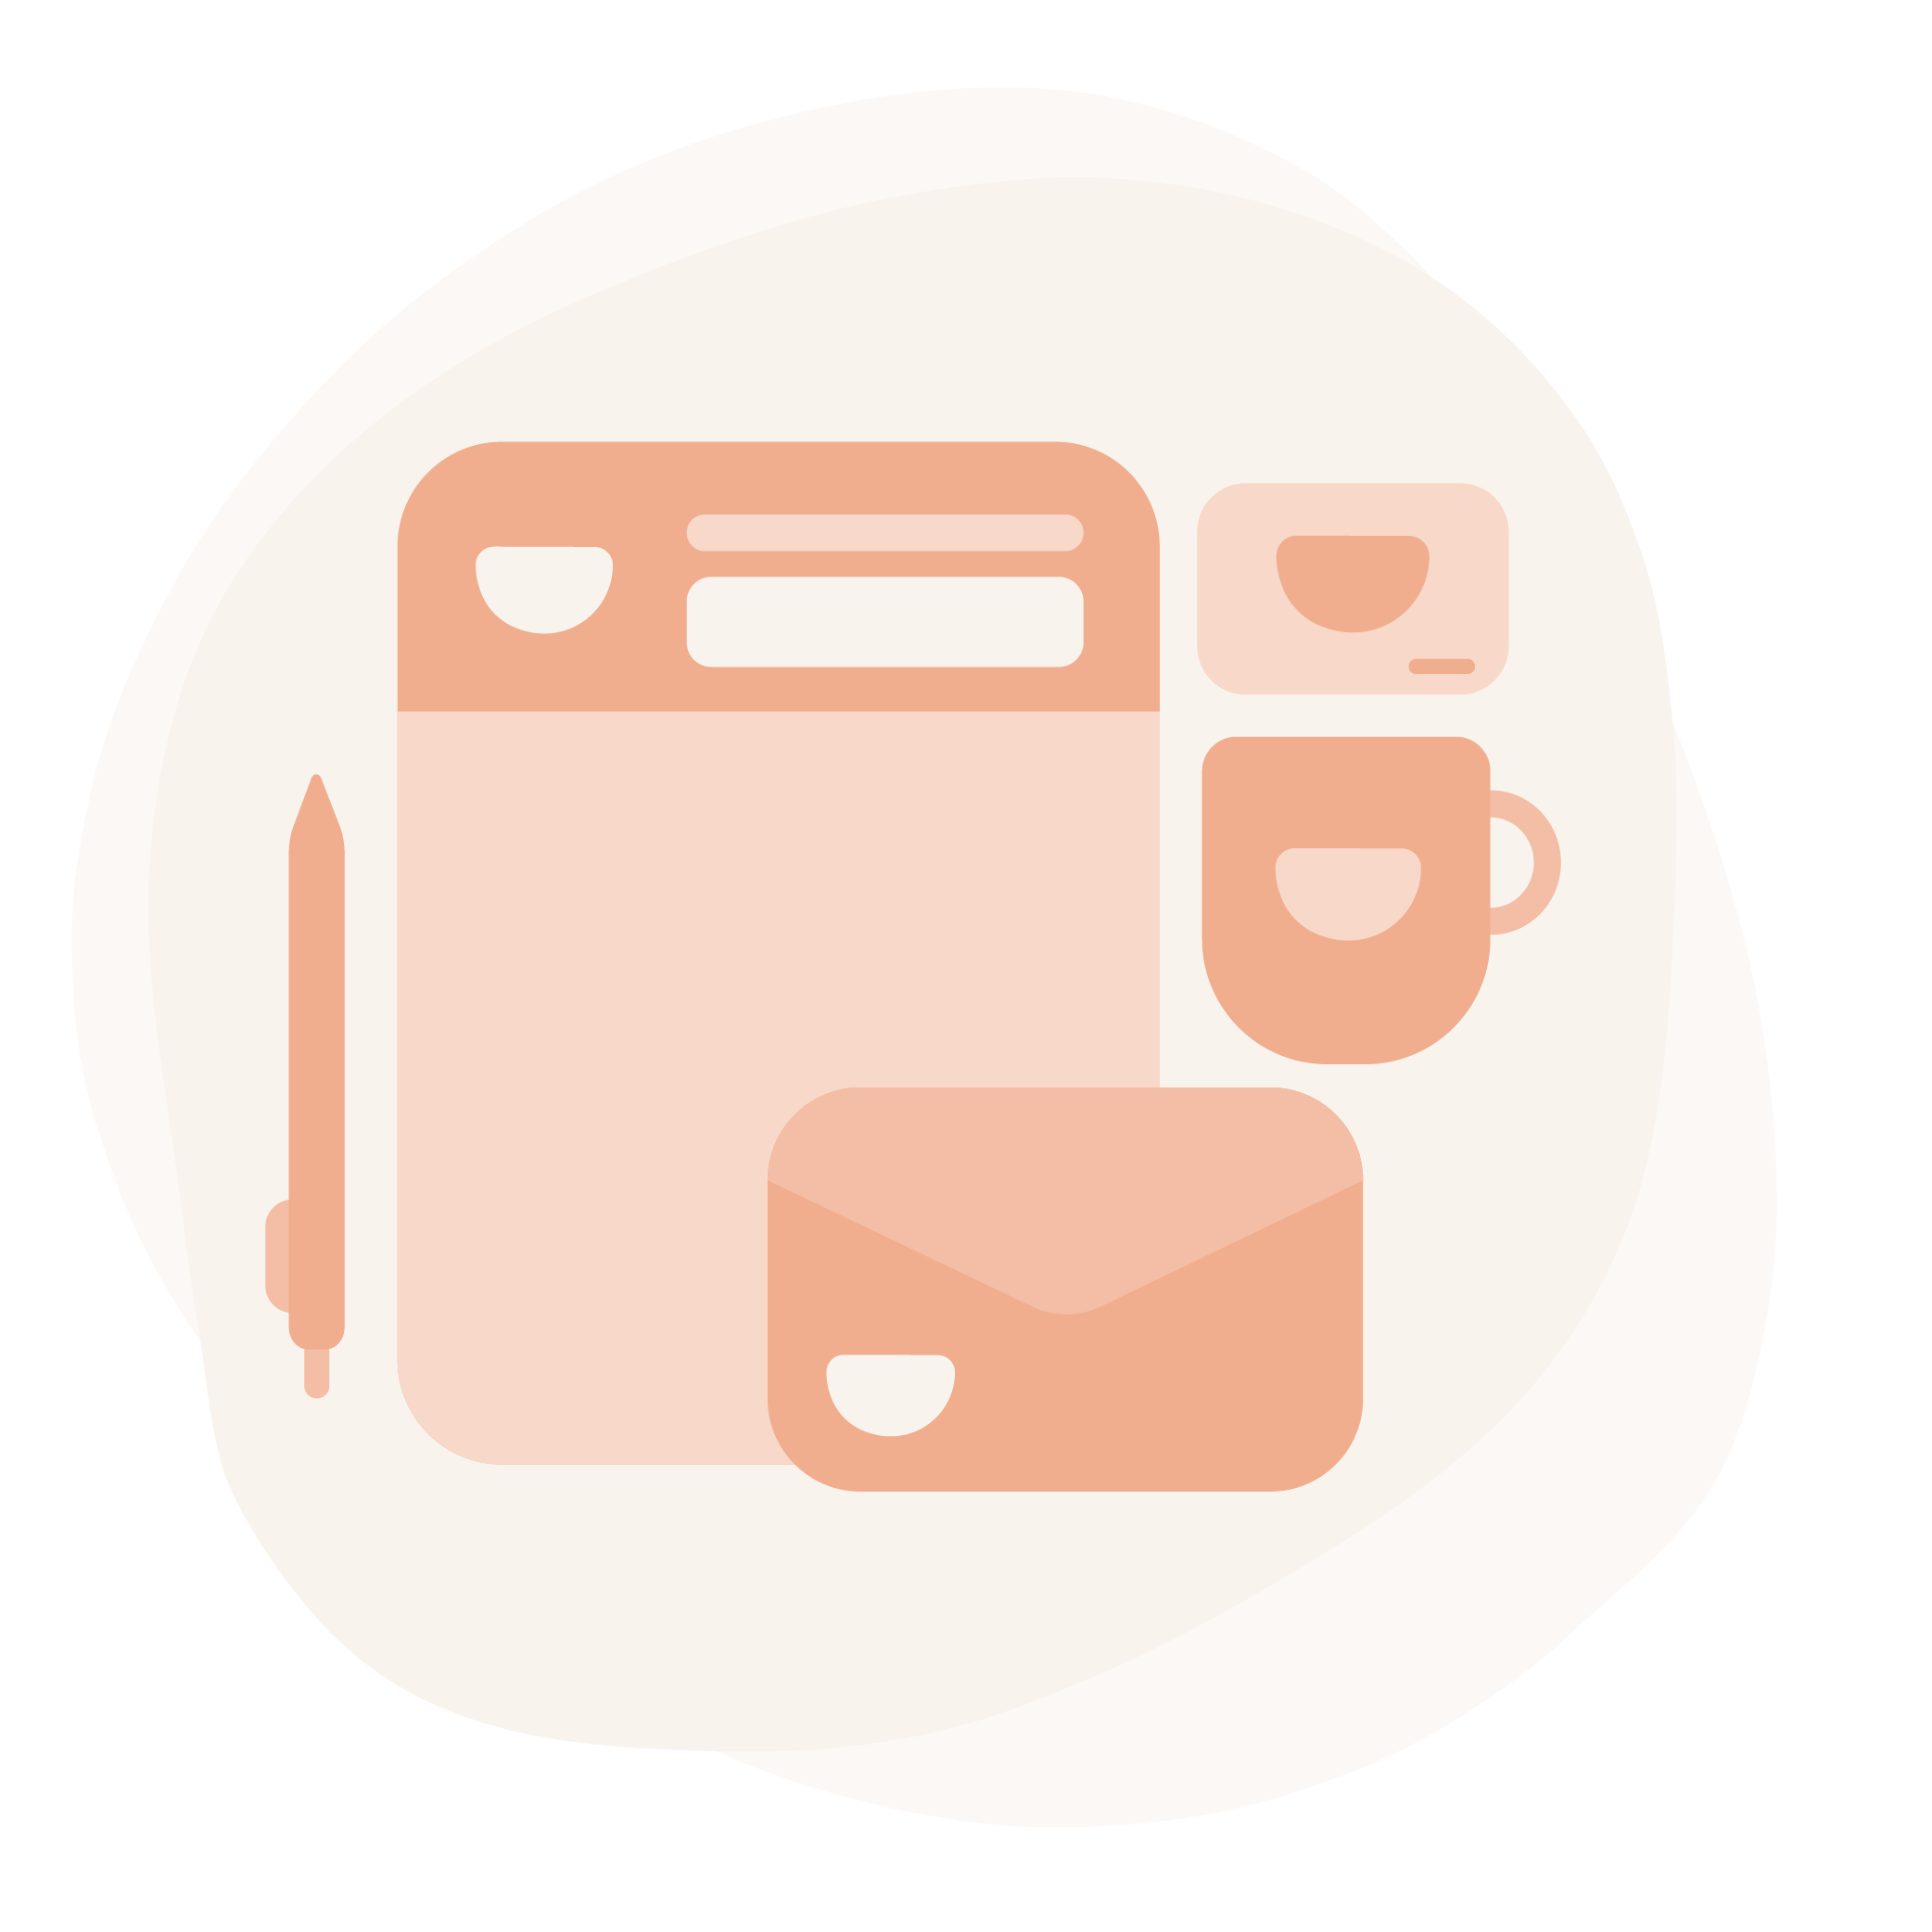 Organic off-white splotch shape featuring an illustration of stationary, an envelope, a mug, a business card, and a pen. They are made up of various shades of salmon color and feature a small crescent logo.